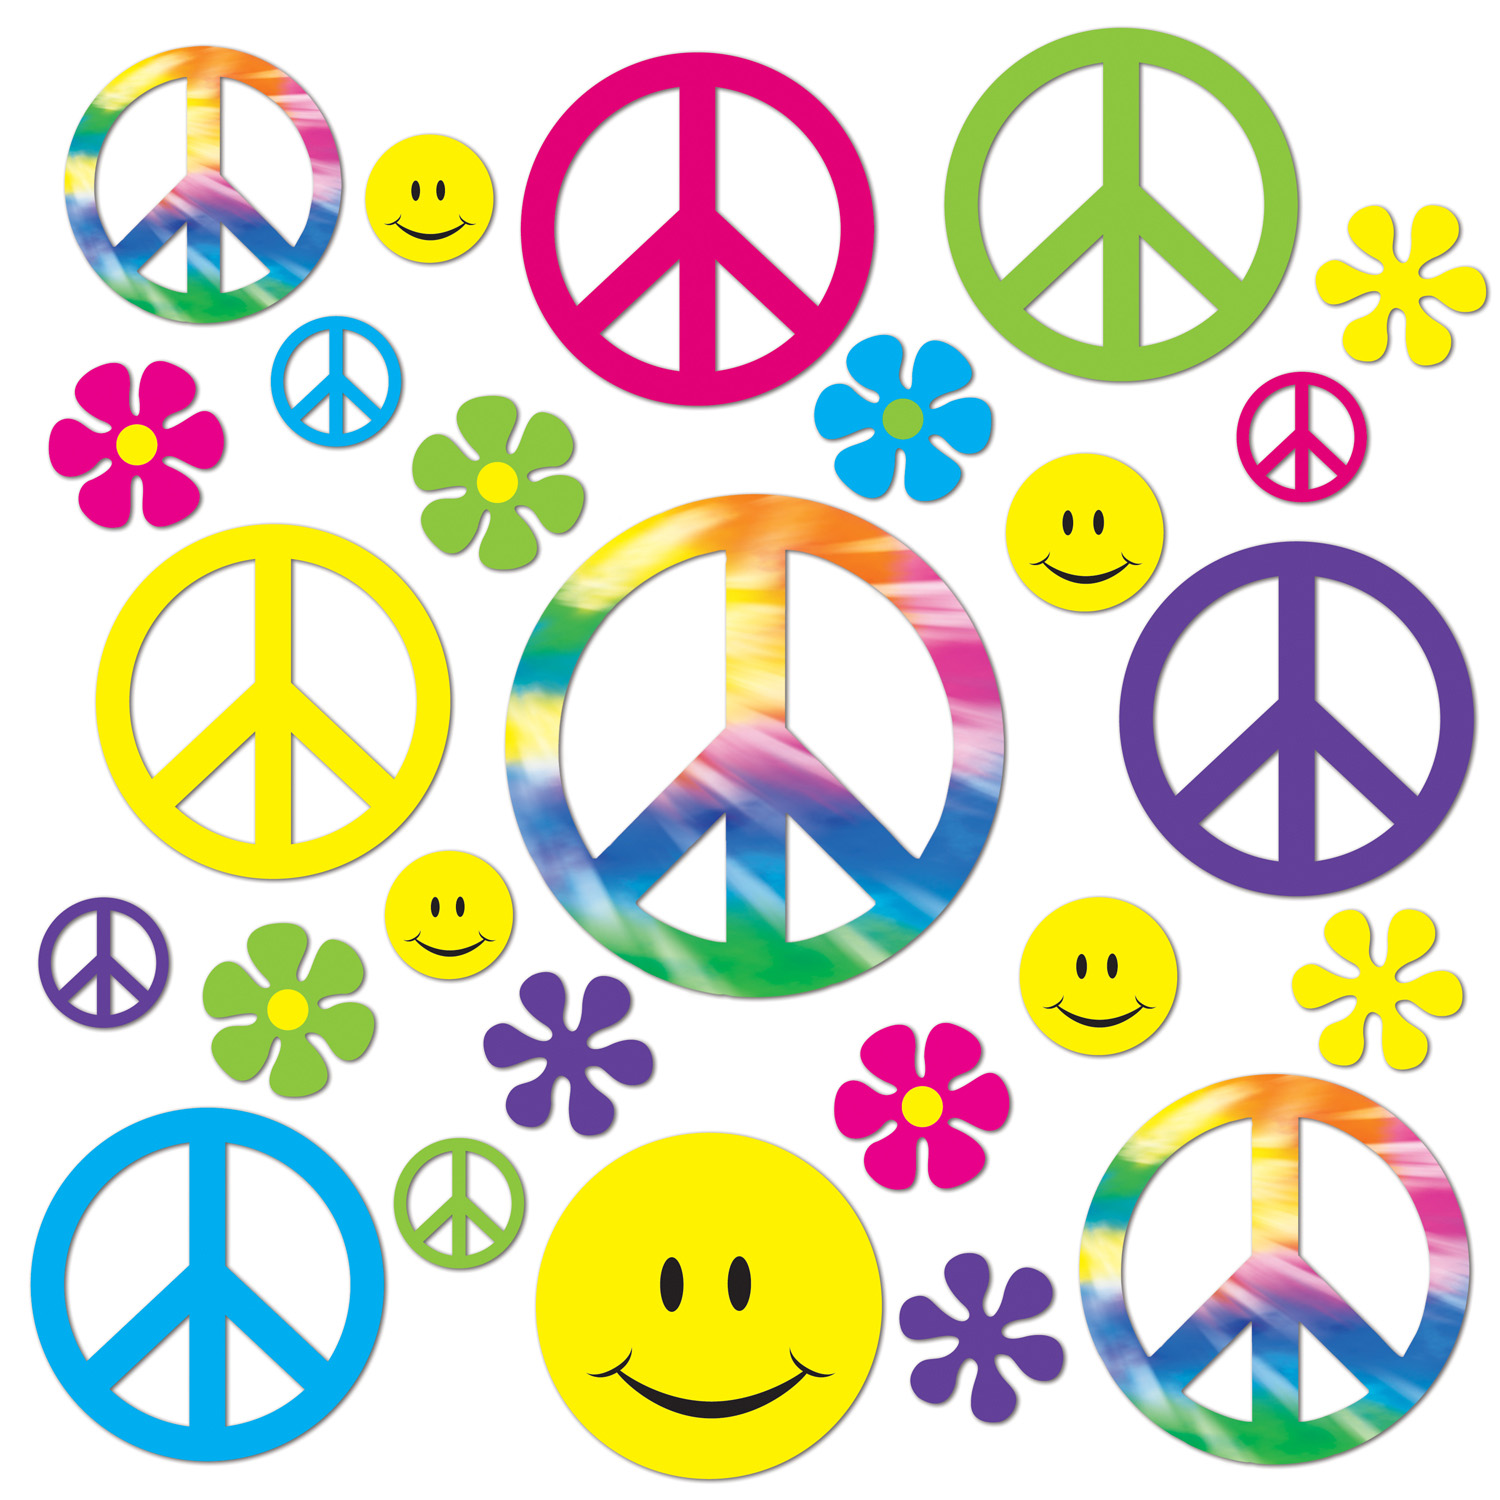 Retro 60s Cutouts (Pack of 504) Retro cutouts, Peace Flowers, Flower Power, Tie-Dye, Groovy decor, Peace Signs, 1960s cutouts, Cheap retro decor, Wall decor, Decorative signs